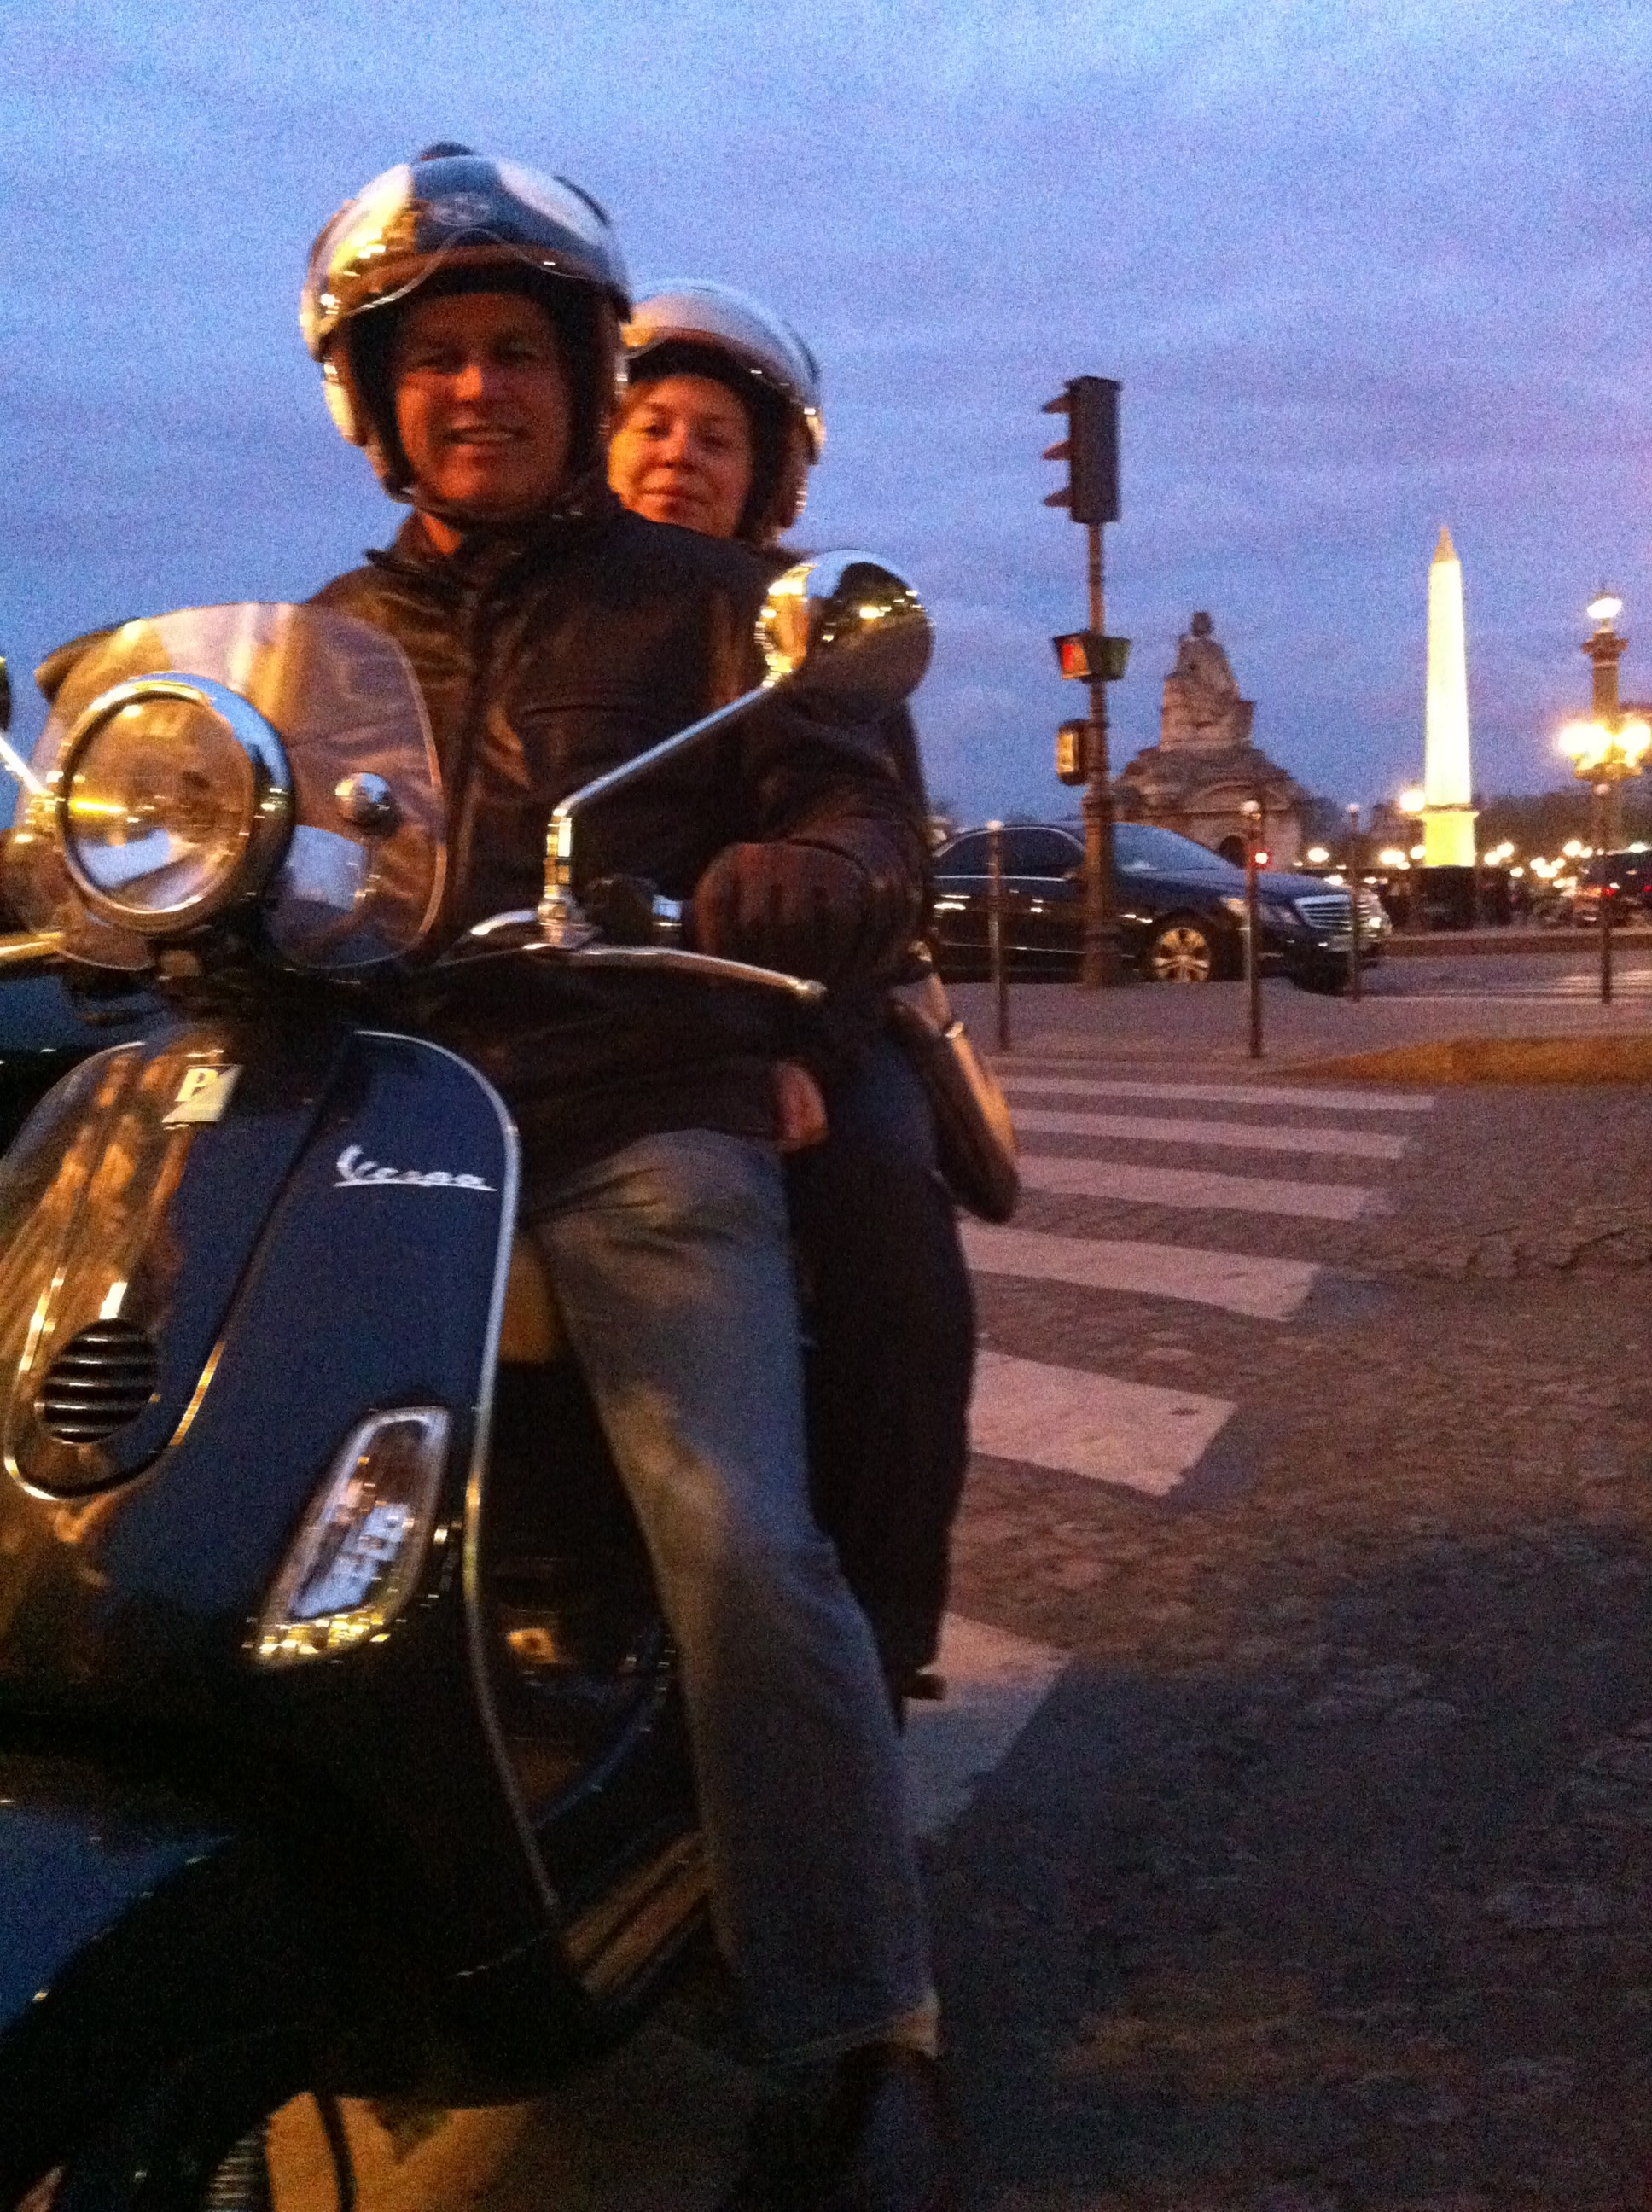 picture of paris france by night : concorde square by vespa scooter.